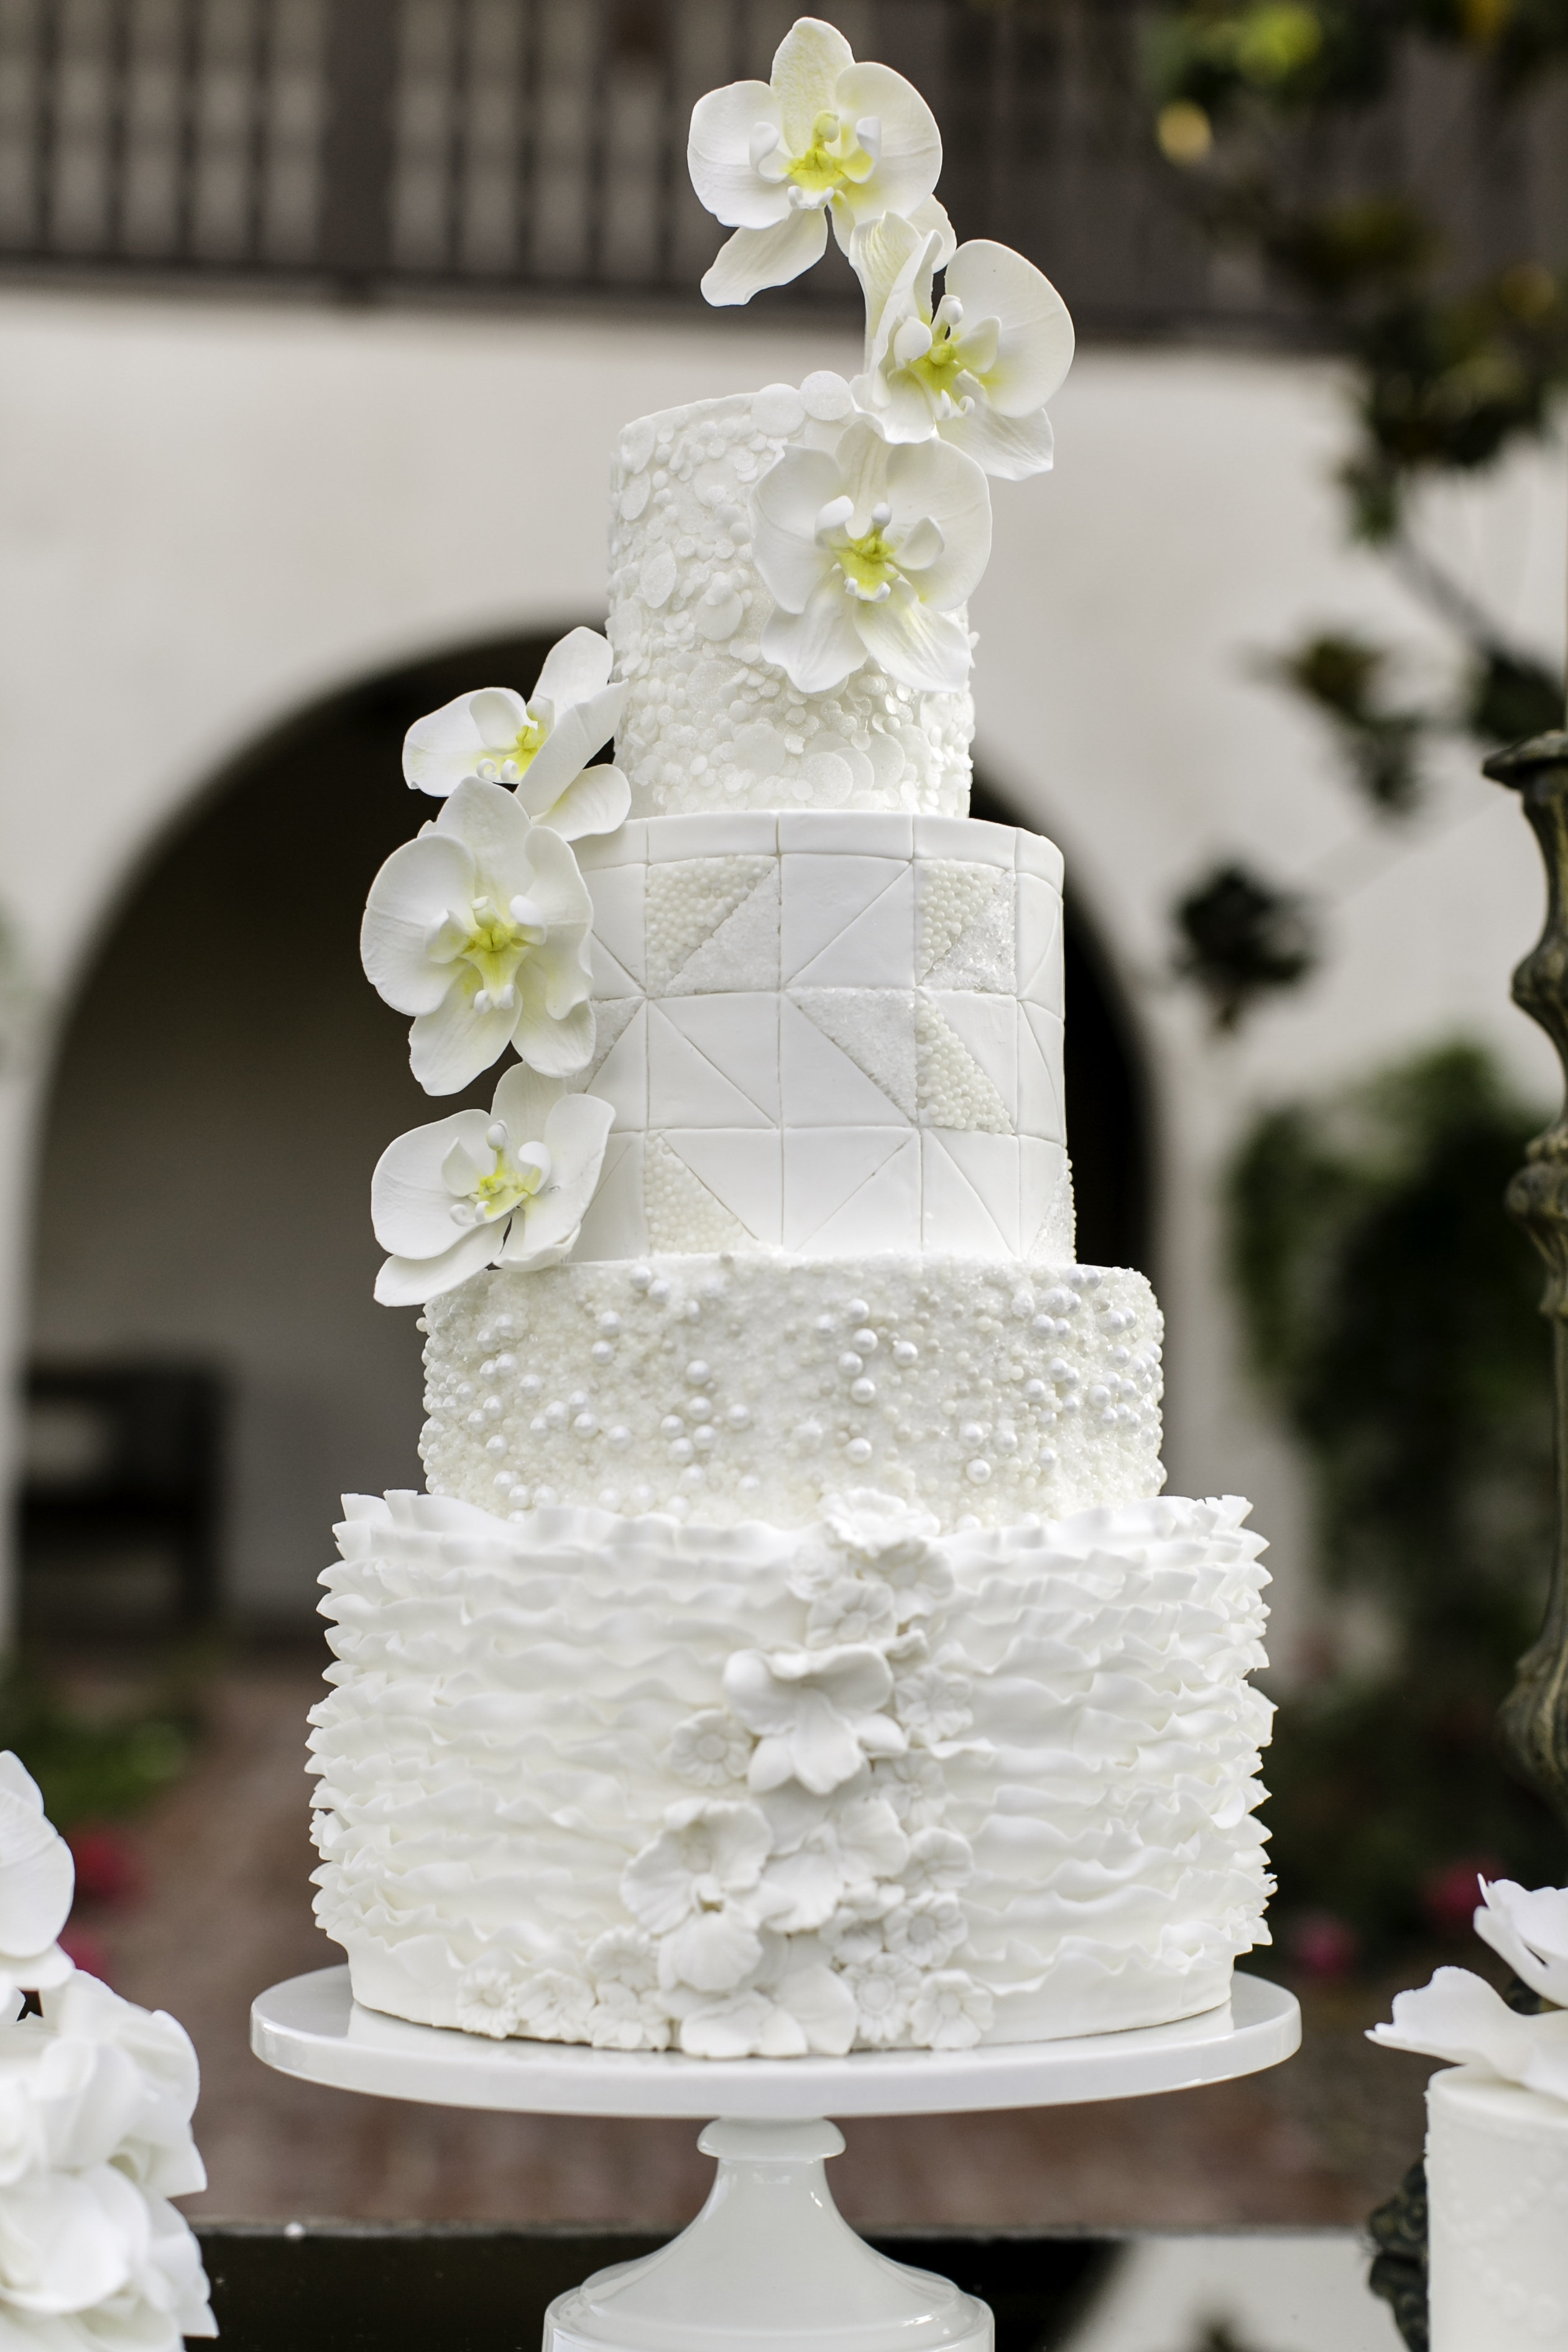 Orchid Wedding Cake   Moth Orchids made of gumpaste adorn this white textured wedding cake with fondant frills, pearls, and geometric patterns